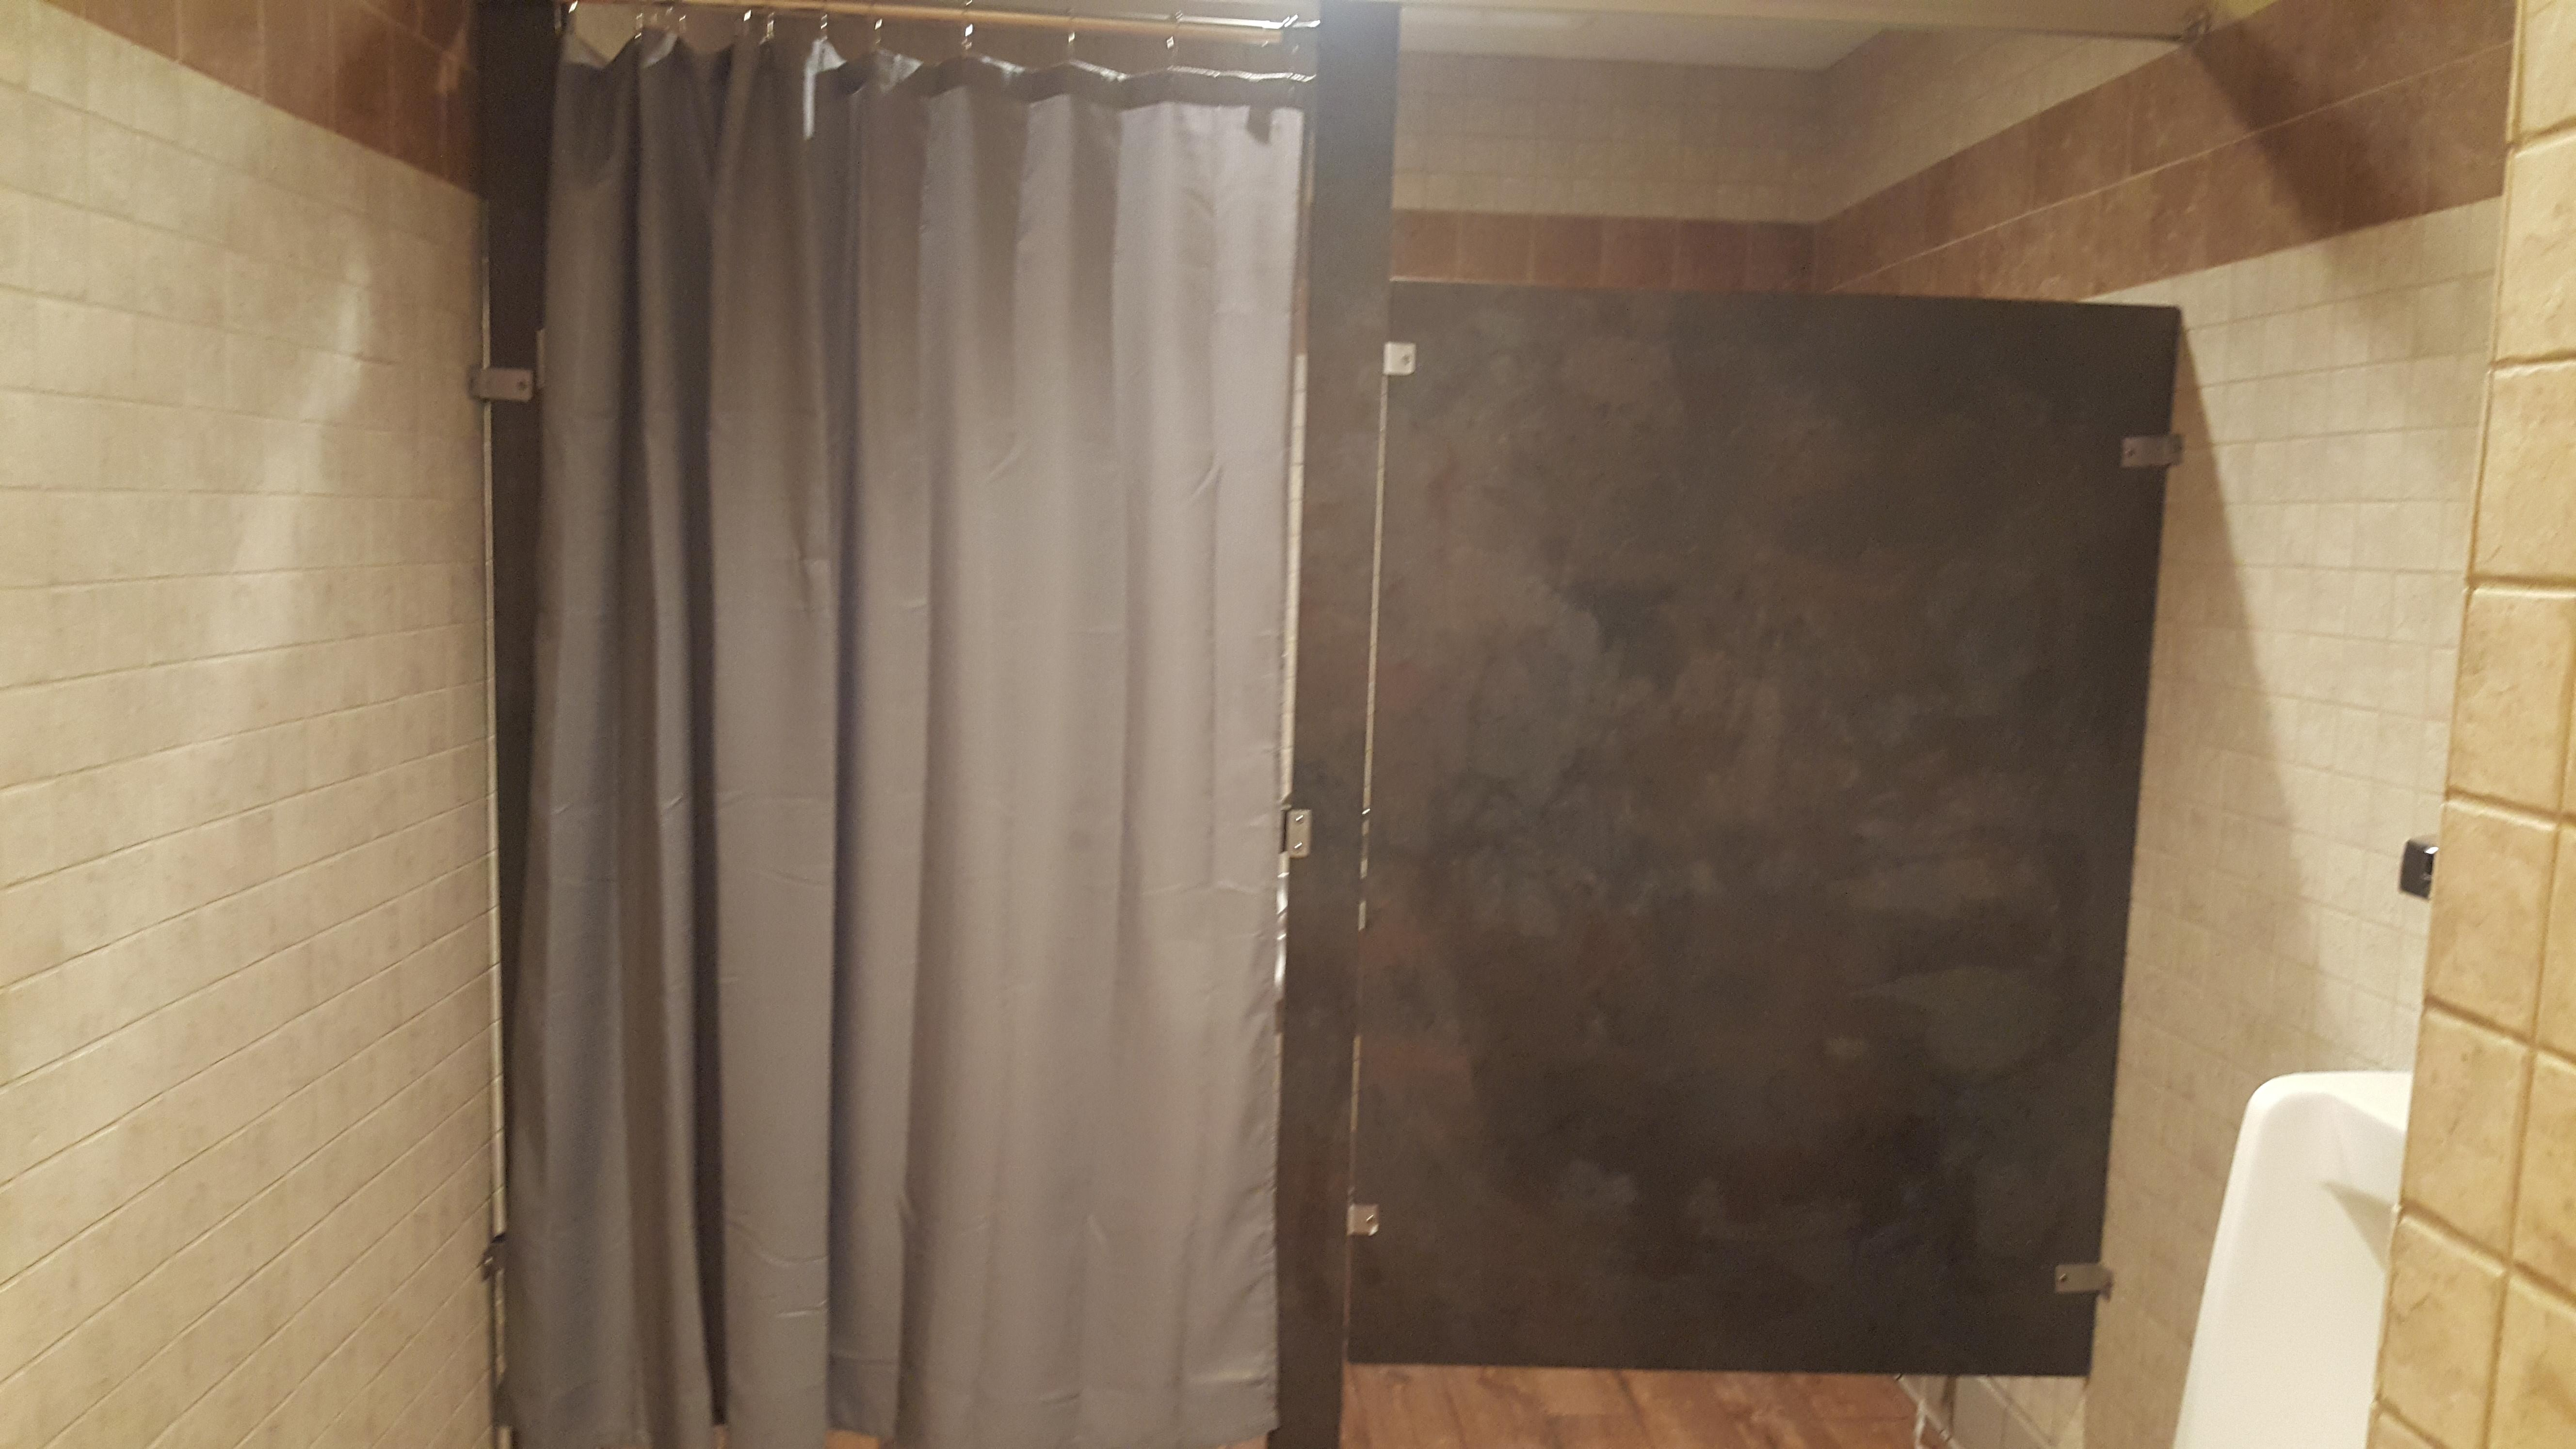 this stall at my local dennys door broke so a shower curtain is its permanent replacement notmyjob